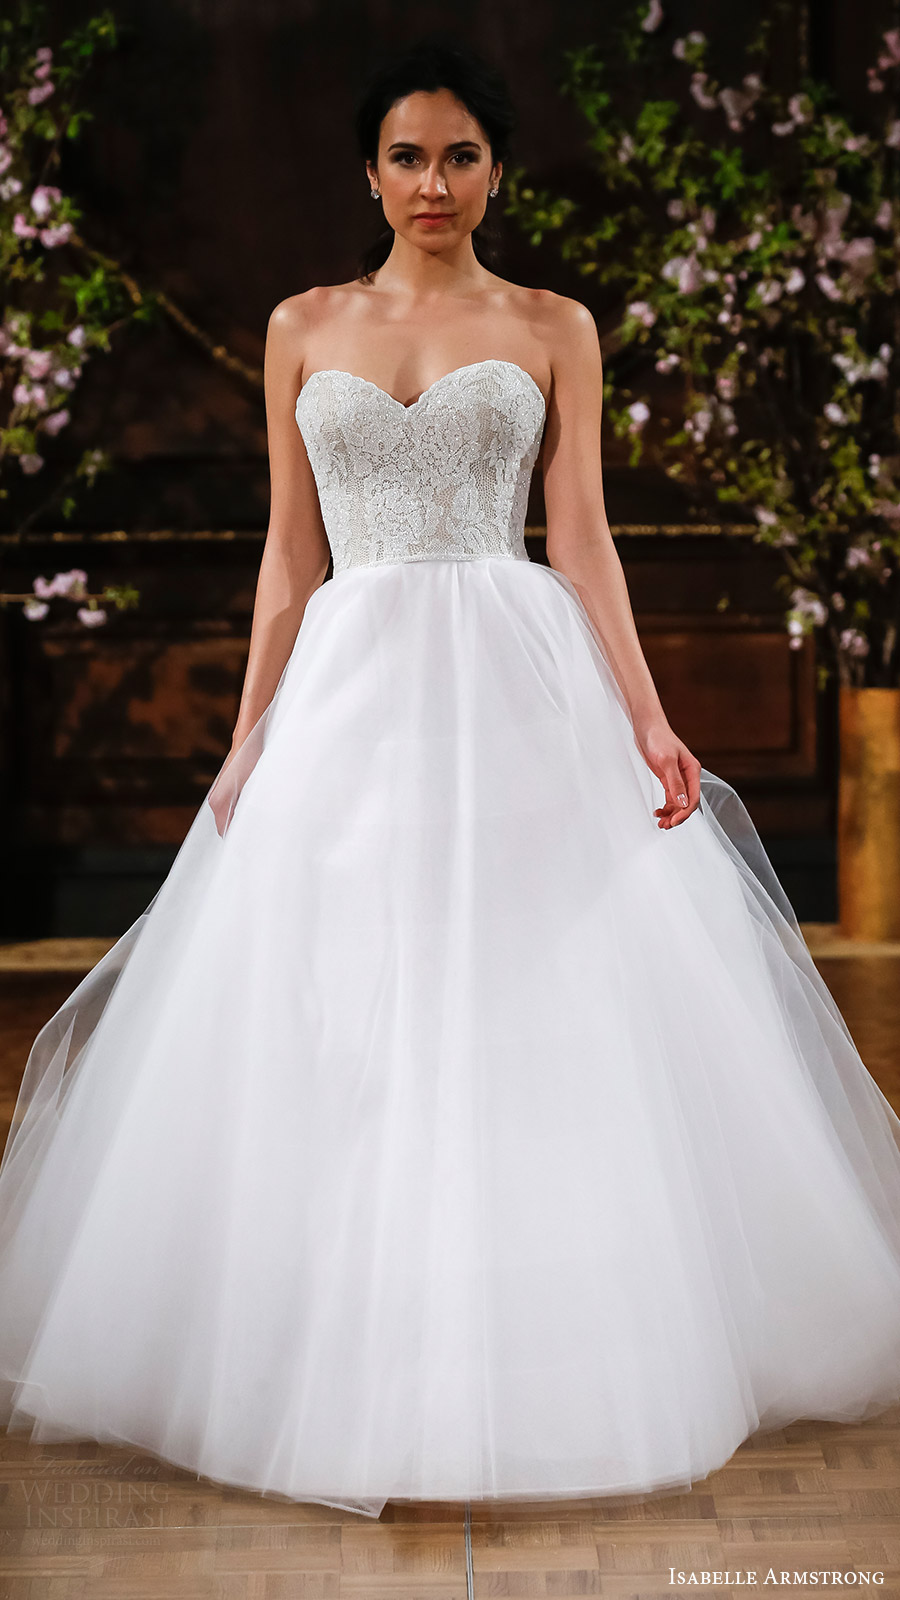 isabelle armstrong bridal spring 2017 strapless sweetheart ball gown wedding dress (jacki) mv romantic